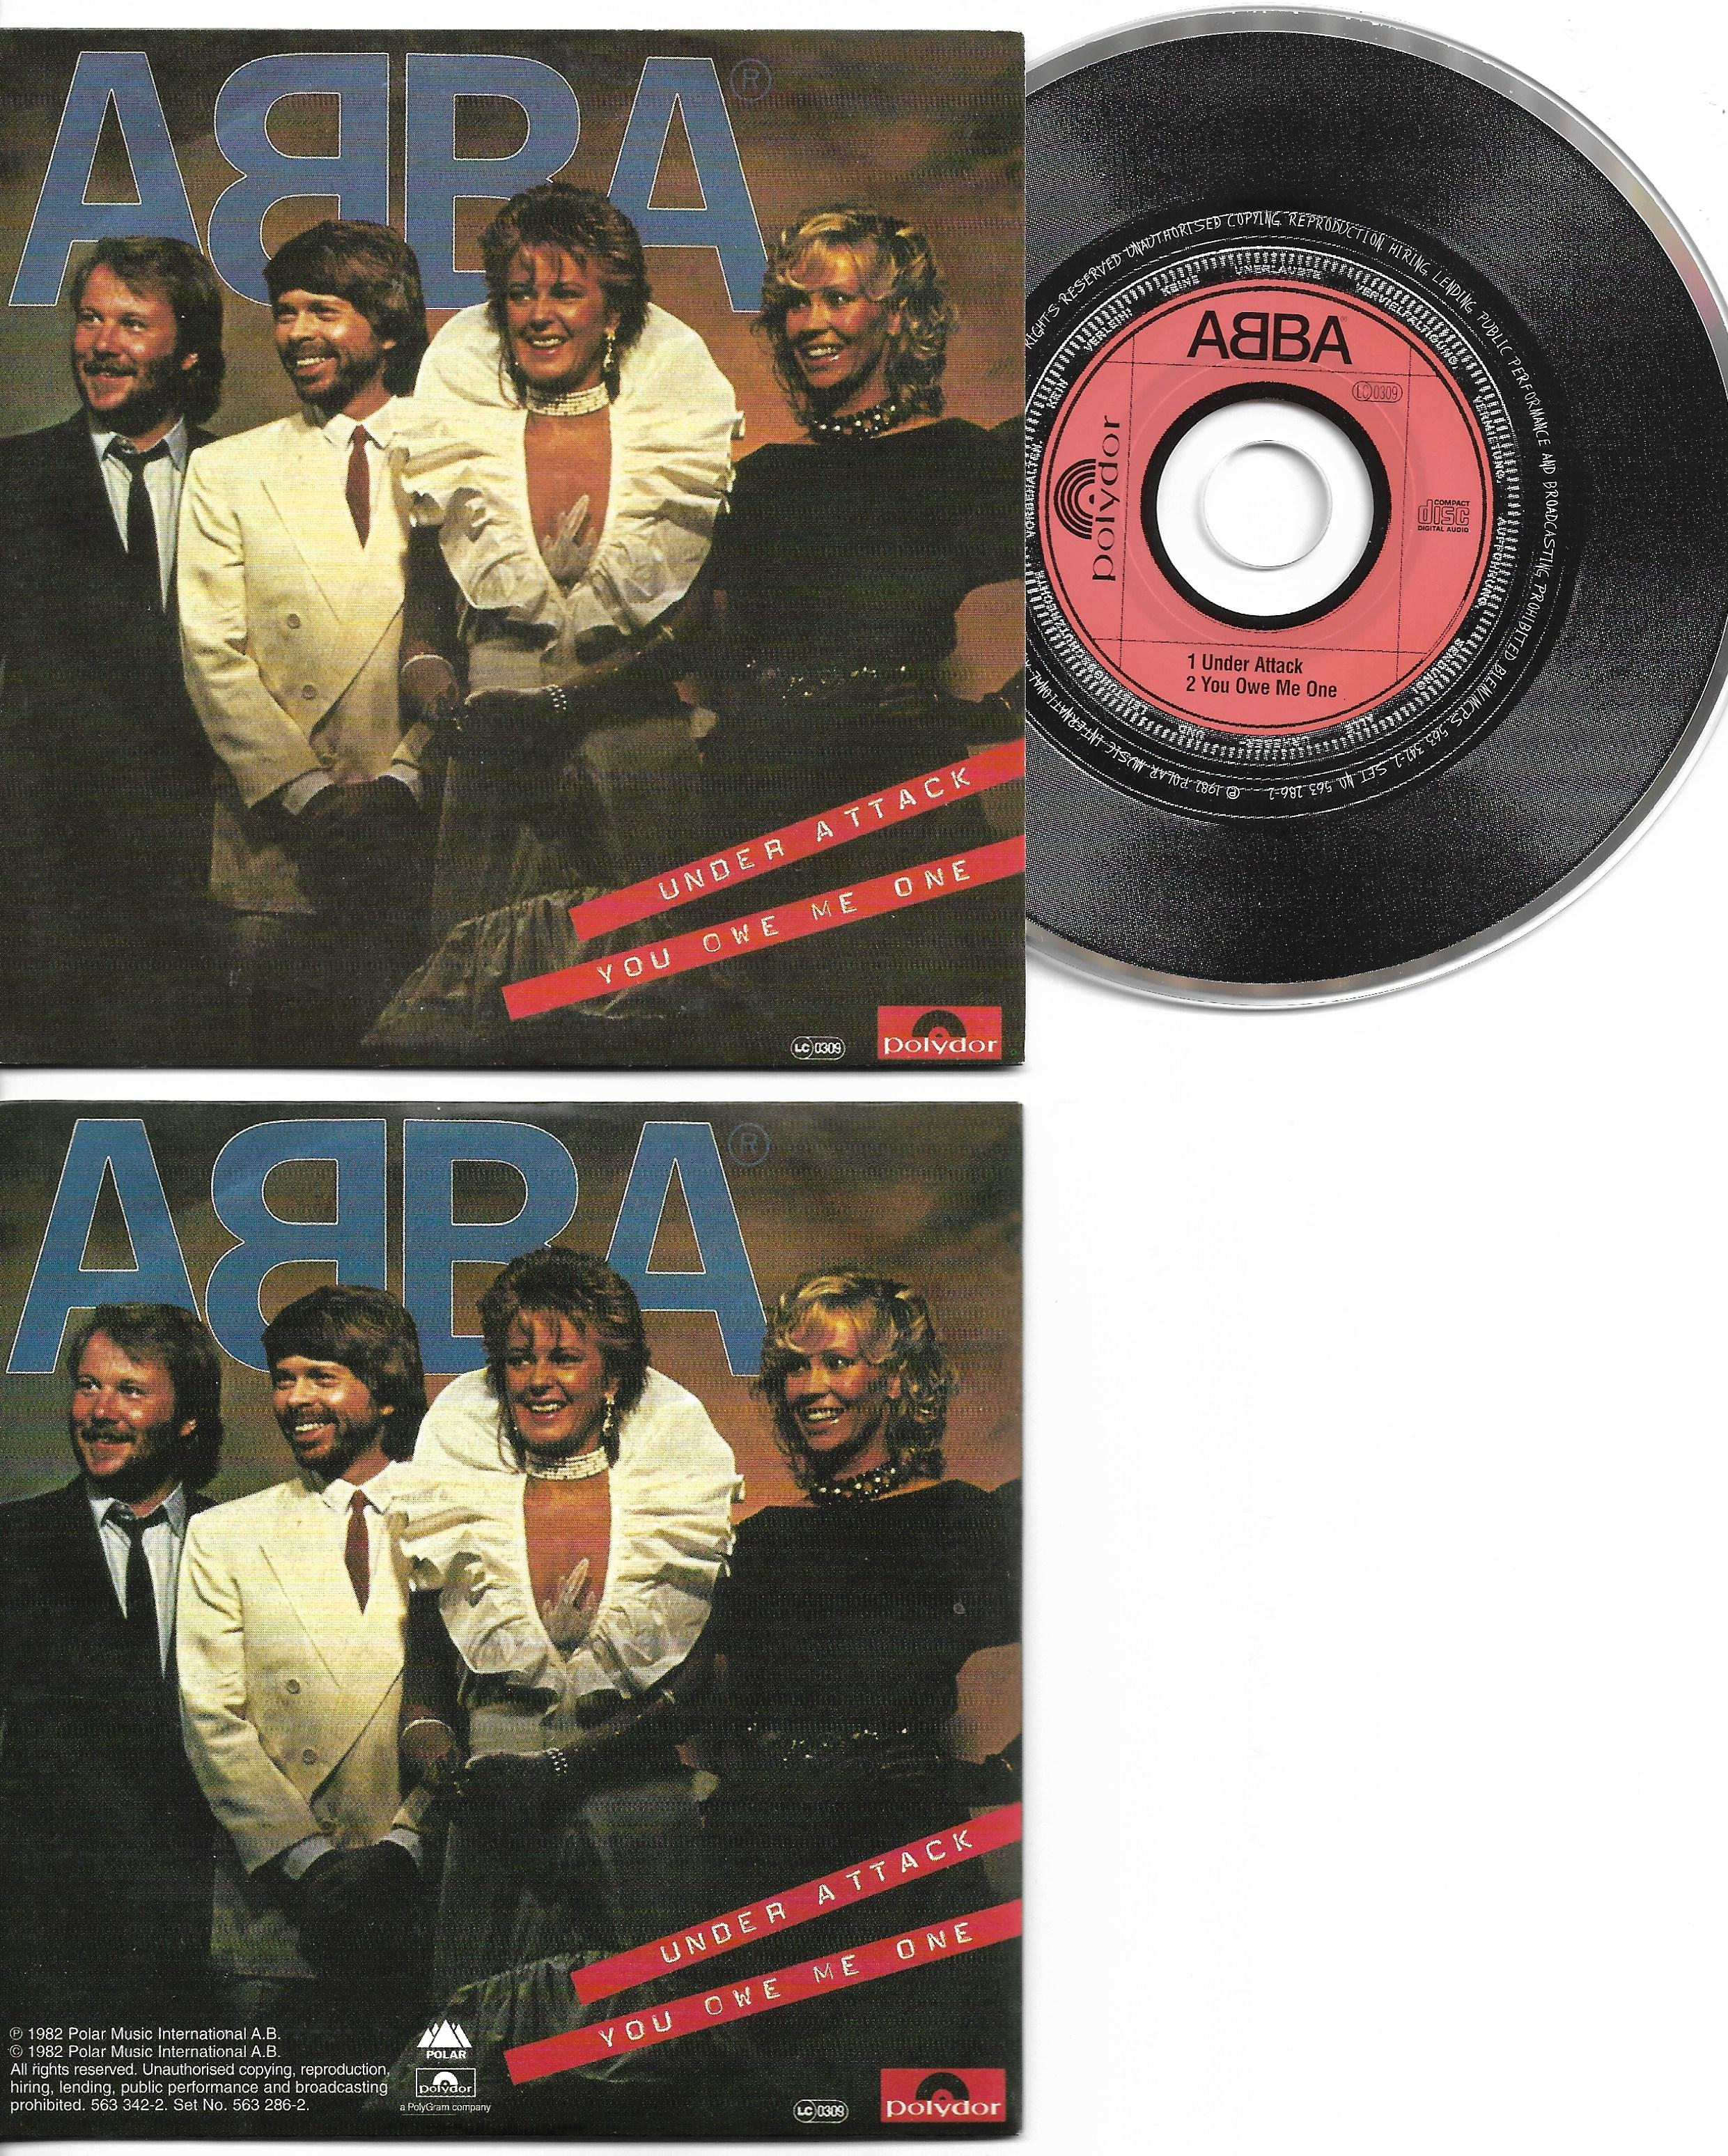 ABBA - Under Attack 2-track Card Sleeve